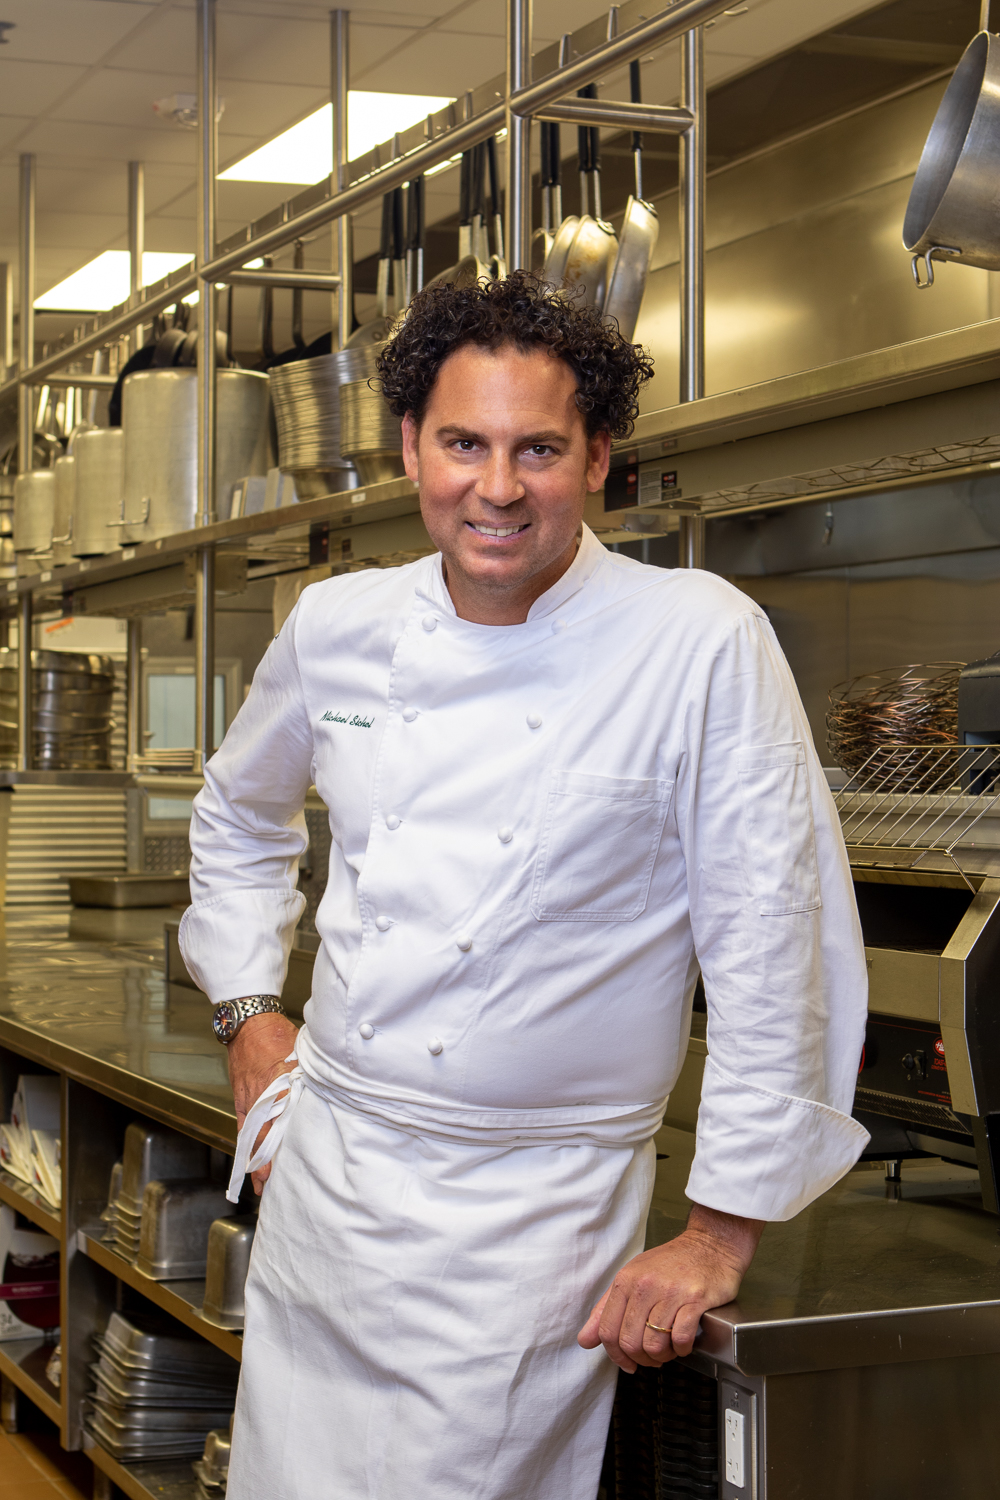 https://www.foodandwine.com/news/michael-sichel-new-chef-hotel-bennett-charleston?utm_source=foodandwine.com&utm_medium=email&utm_campaign=social-button-sharing